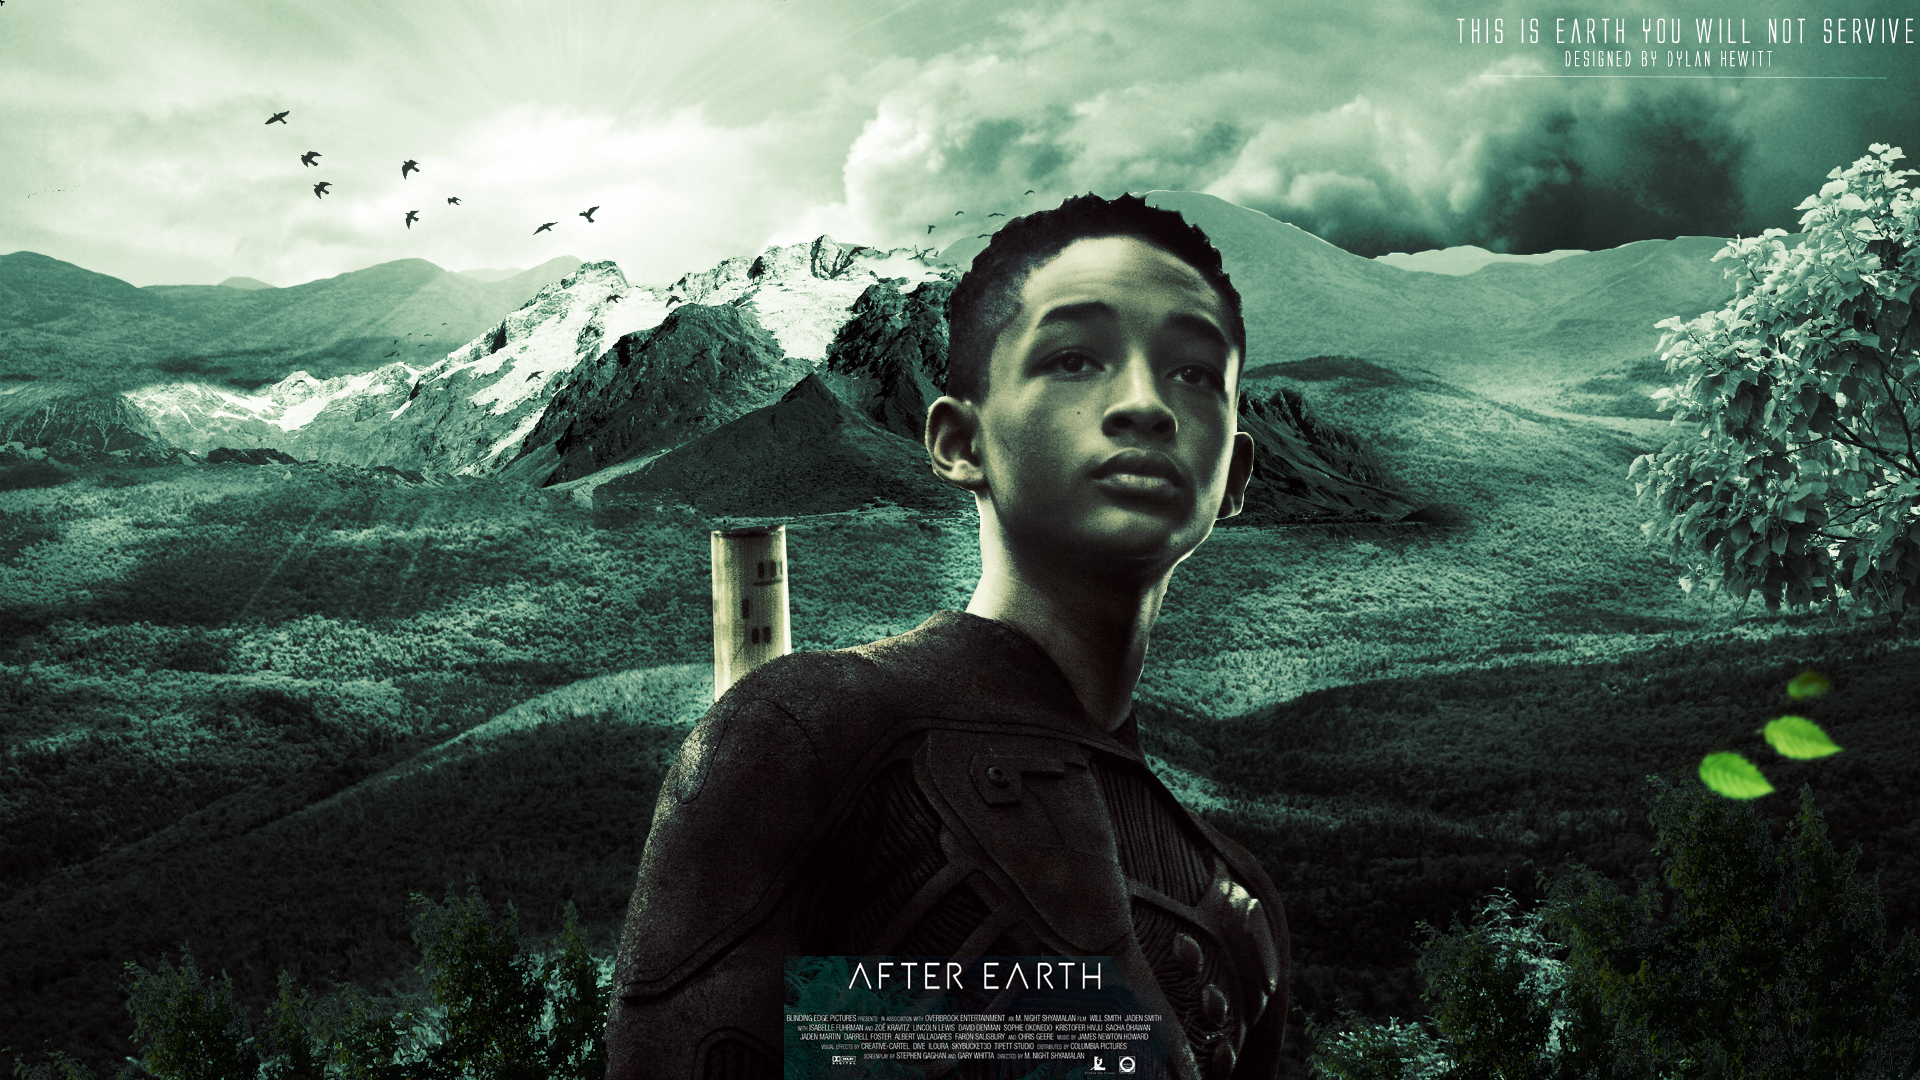 File Name : After Earth Movie 2013 Wallpaper HD 1920×1080